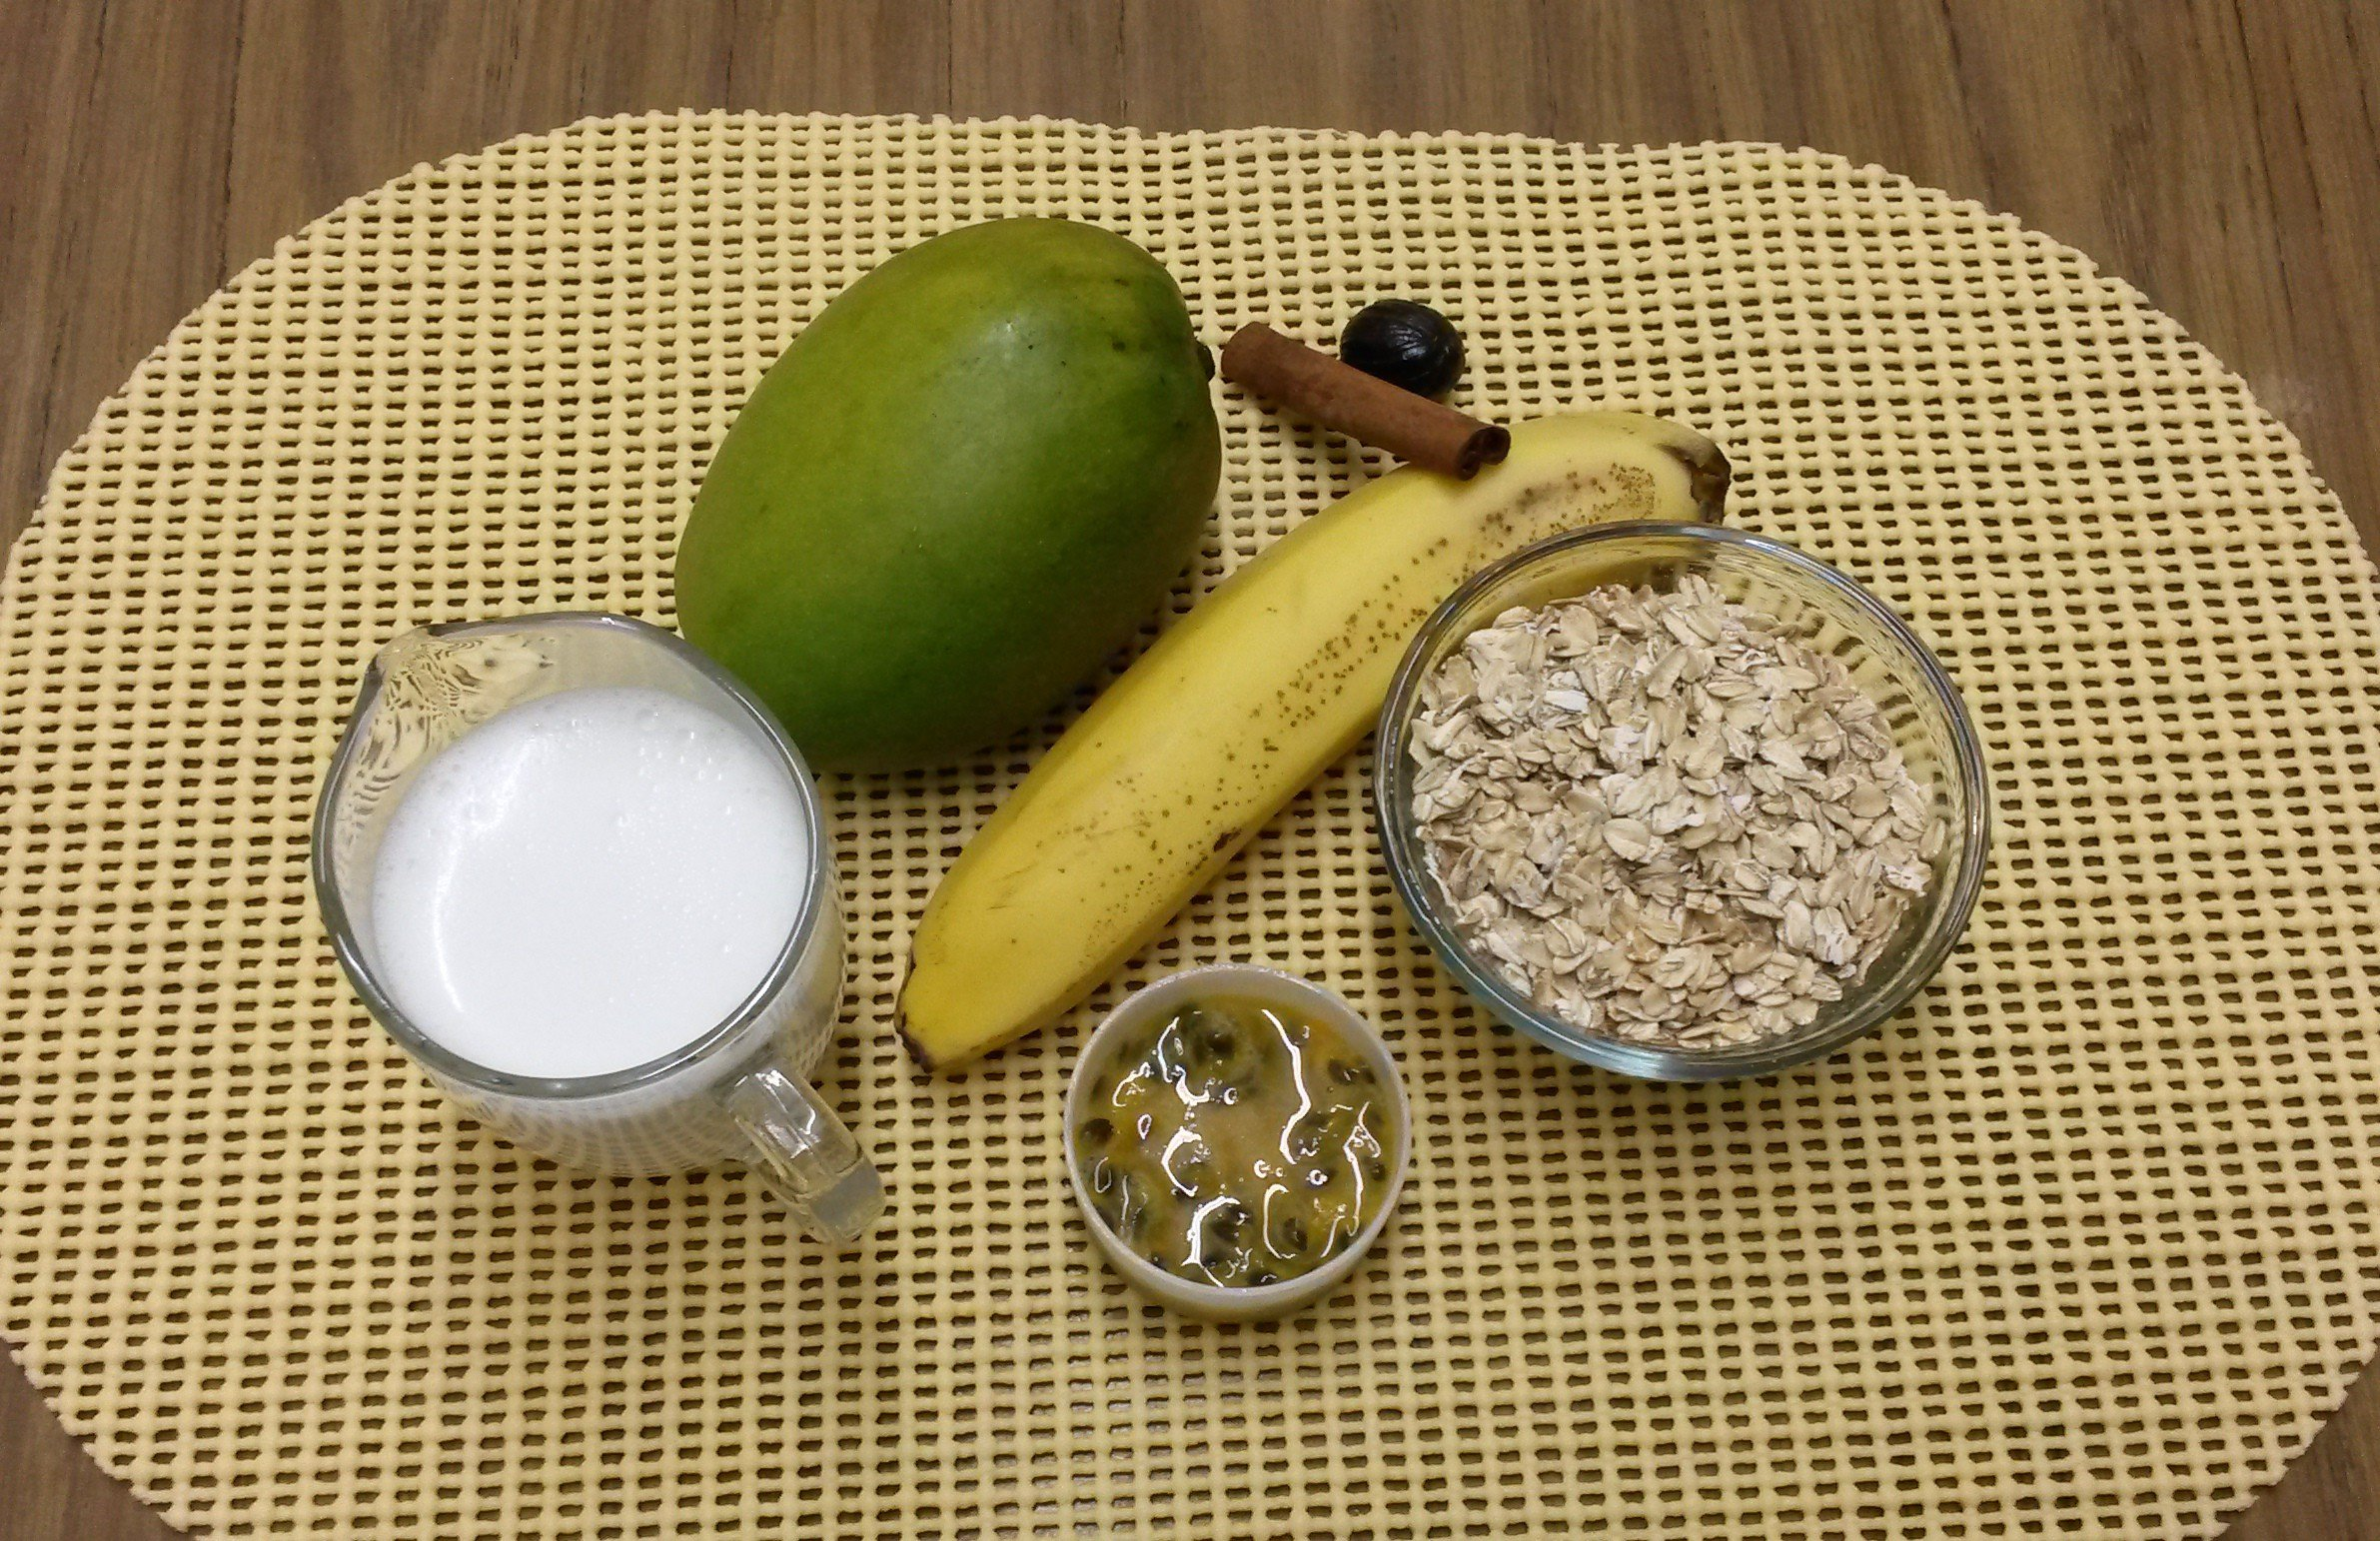 #MeatlessMonday: Vegan Tropical Oat Smoothie